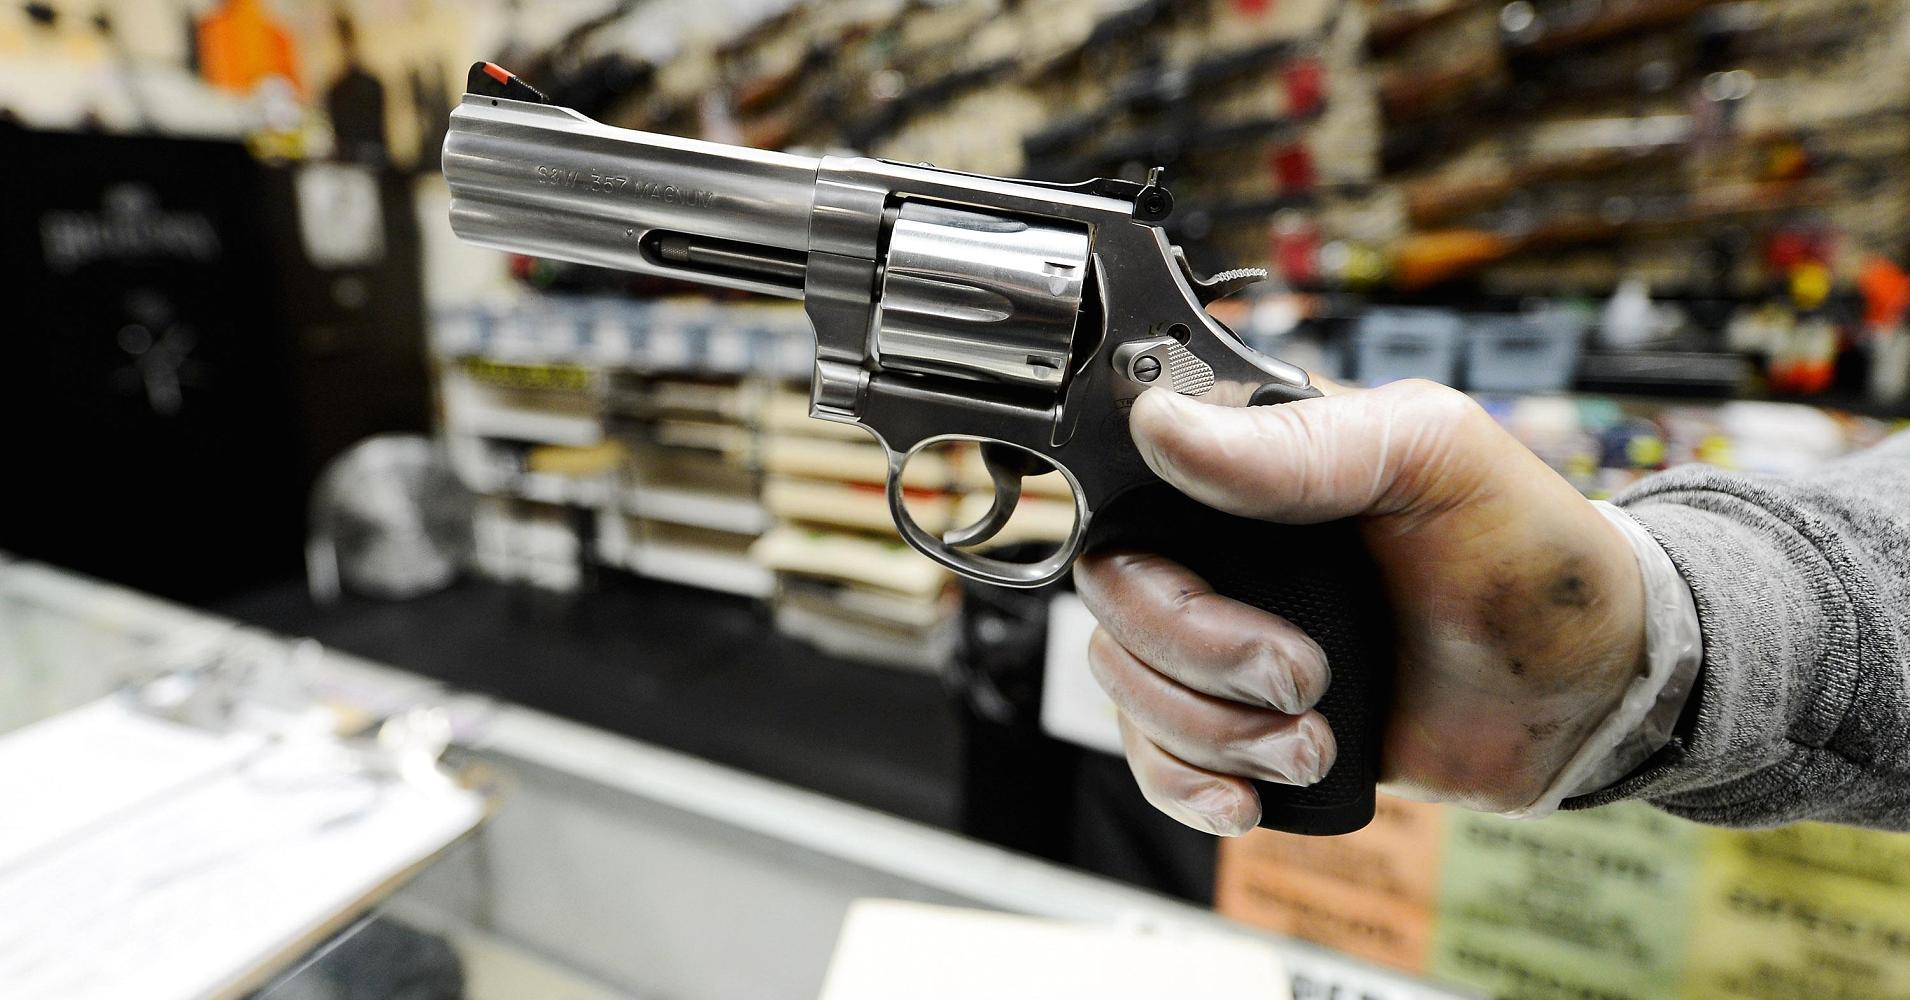 Smith & Wesson trades near all-time high